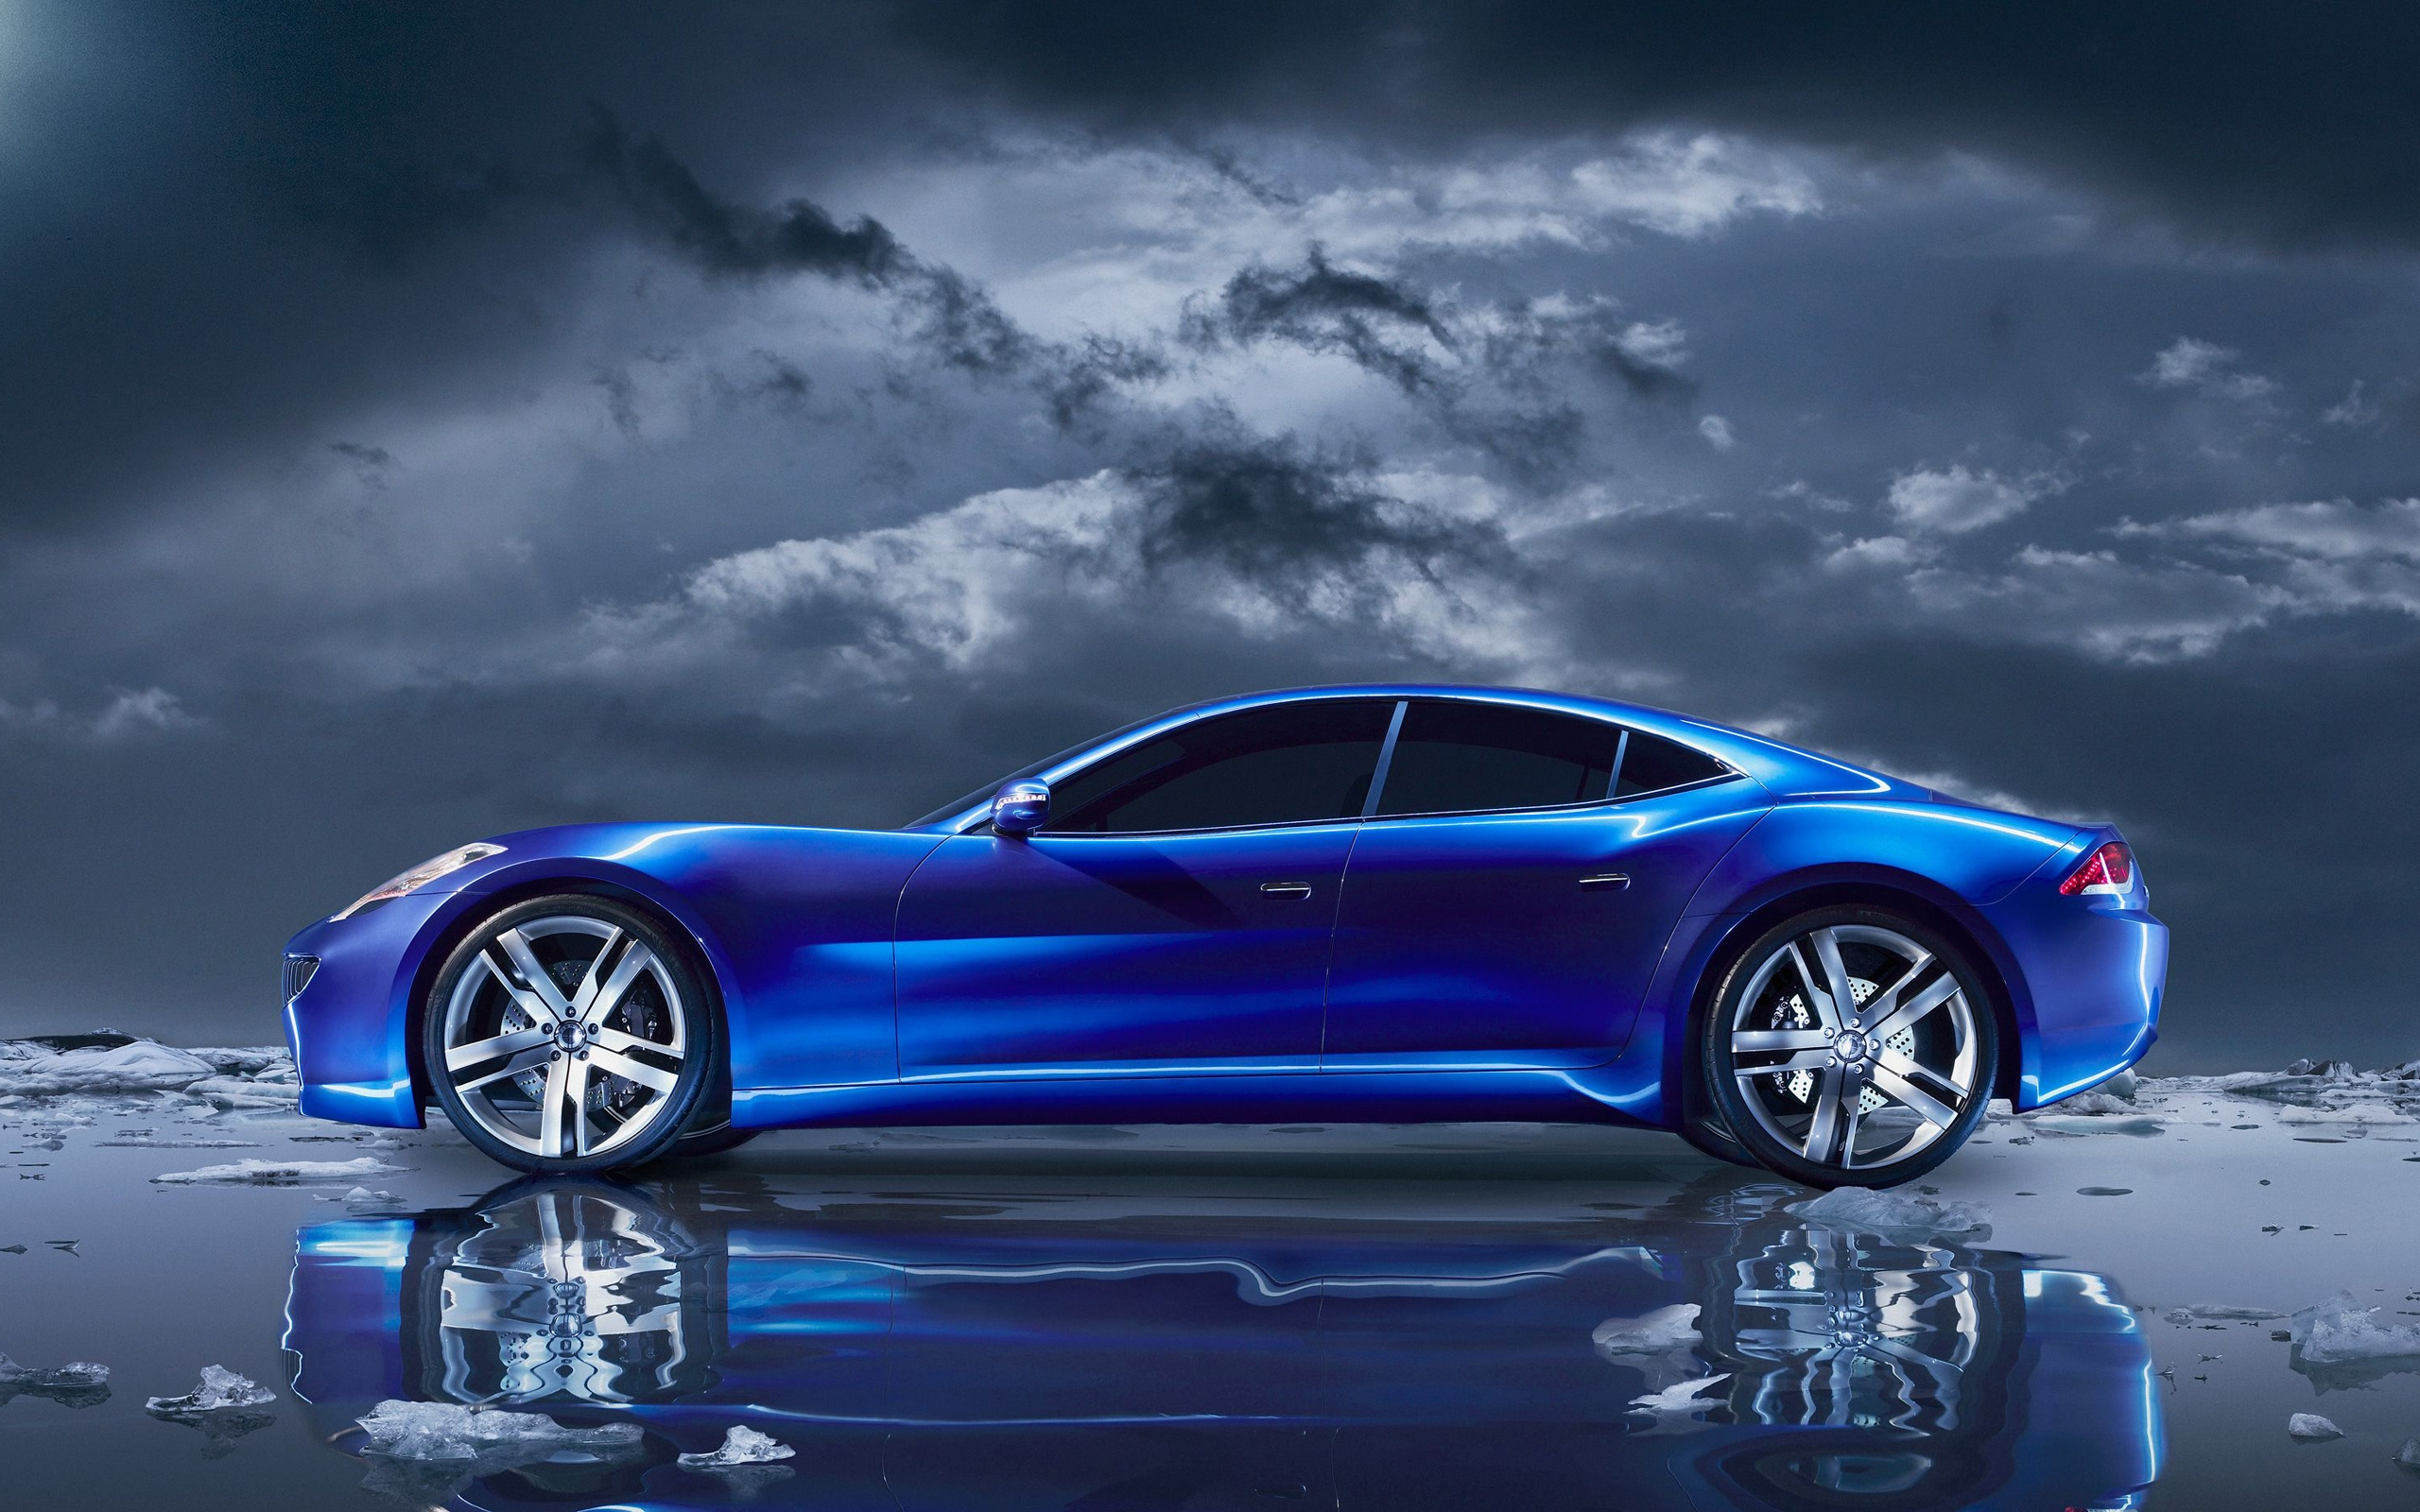 97 Sports Car HD Wallpapers Background Images 2560x1600